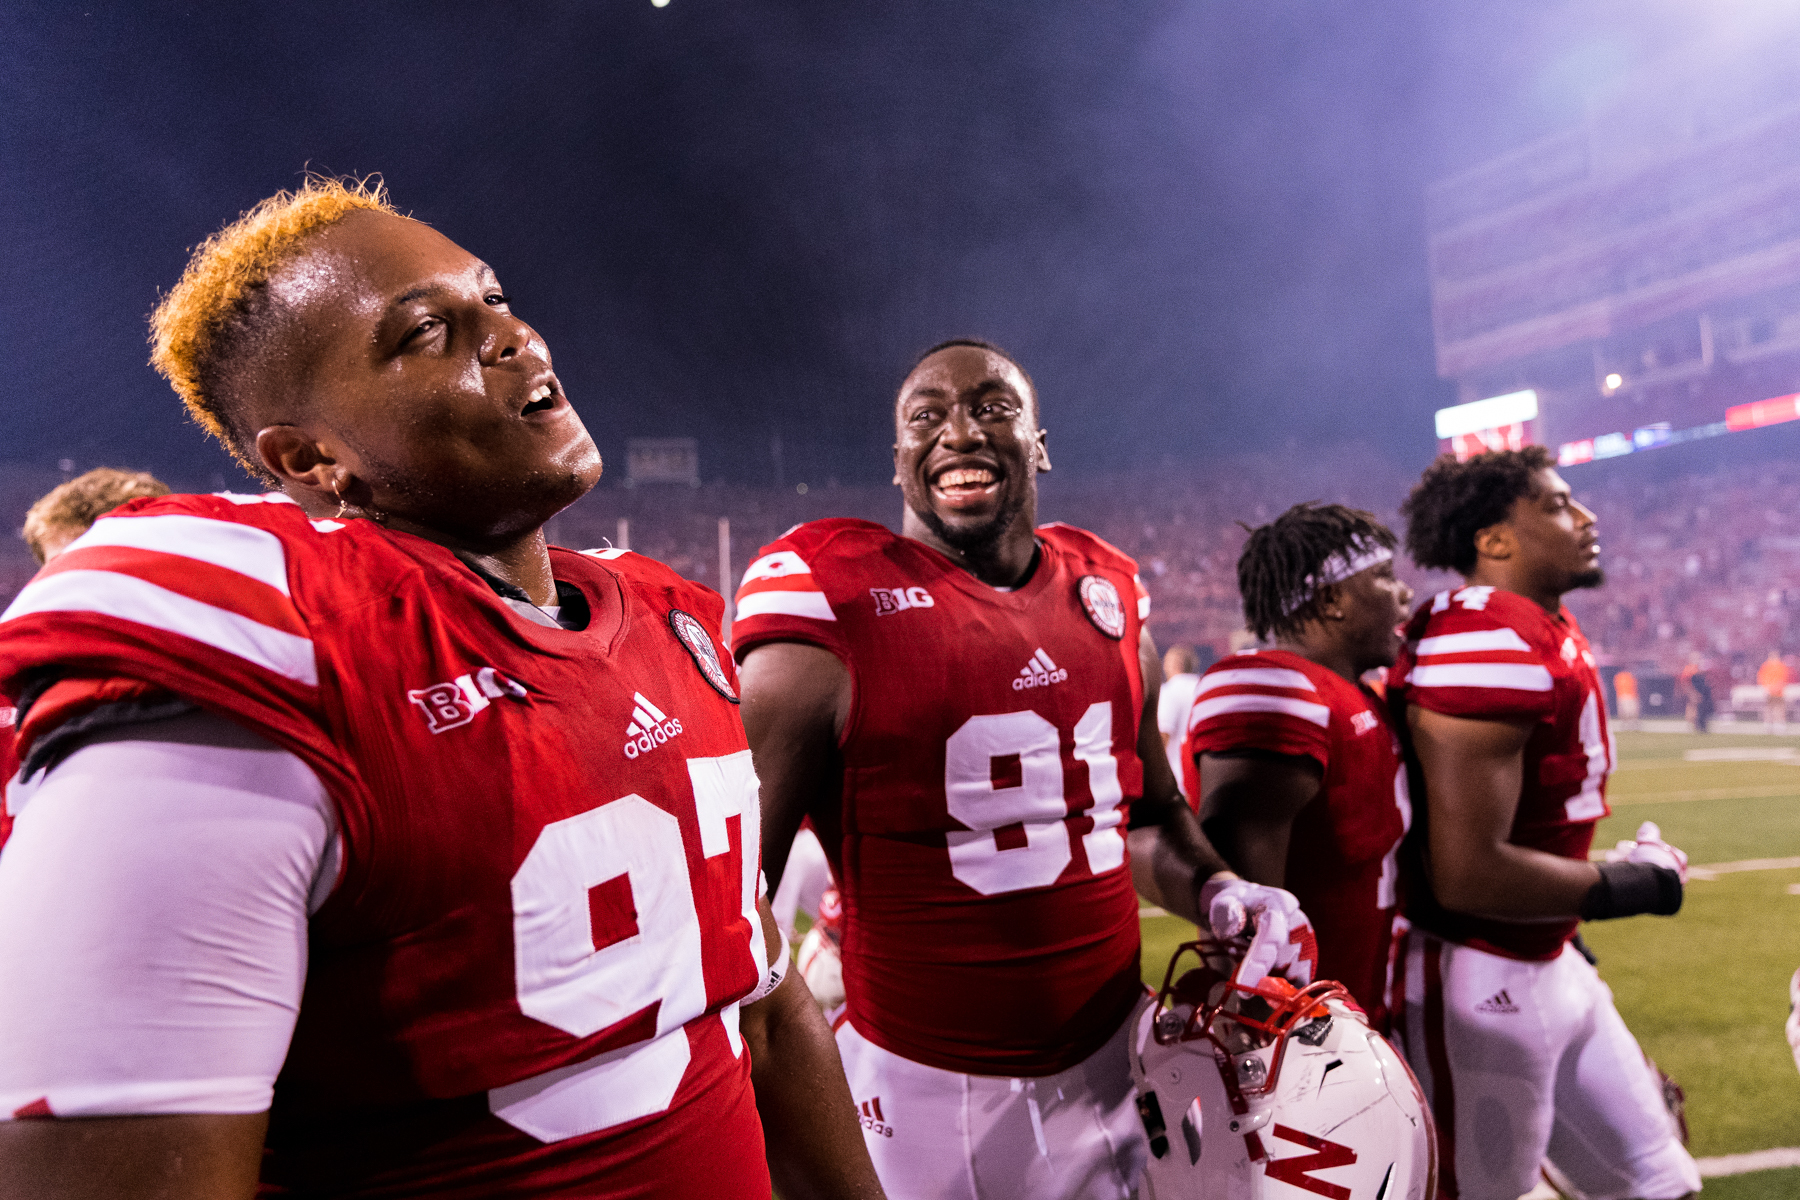 Deontre Thomas, Freedom Akinmoladun #91 of the Nebraska Cornhuskers during Nebraska's game against Arkansas State at Memorial Stadium on Sept. 2, 2017. Photo by Aaron Babcock, Hail Varsity